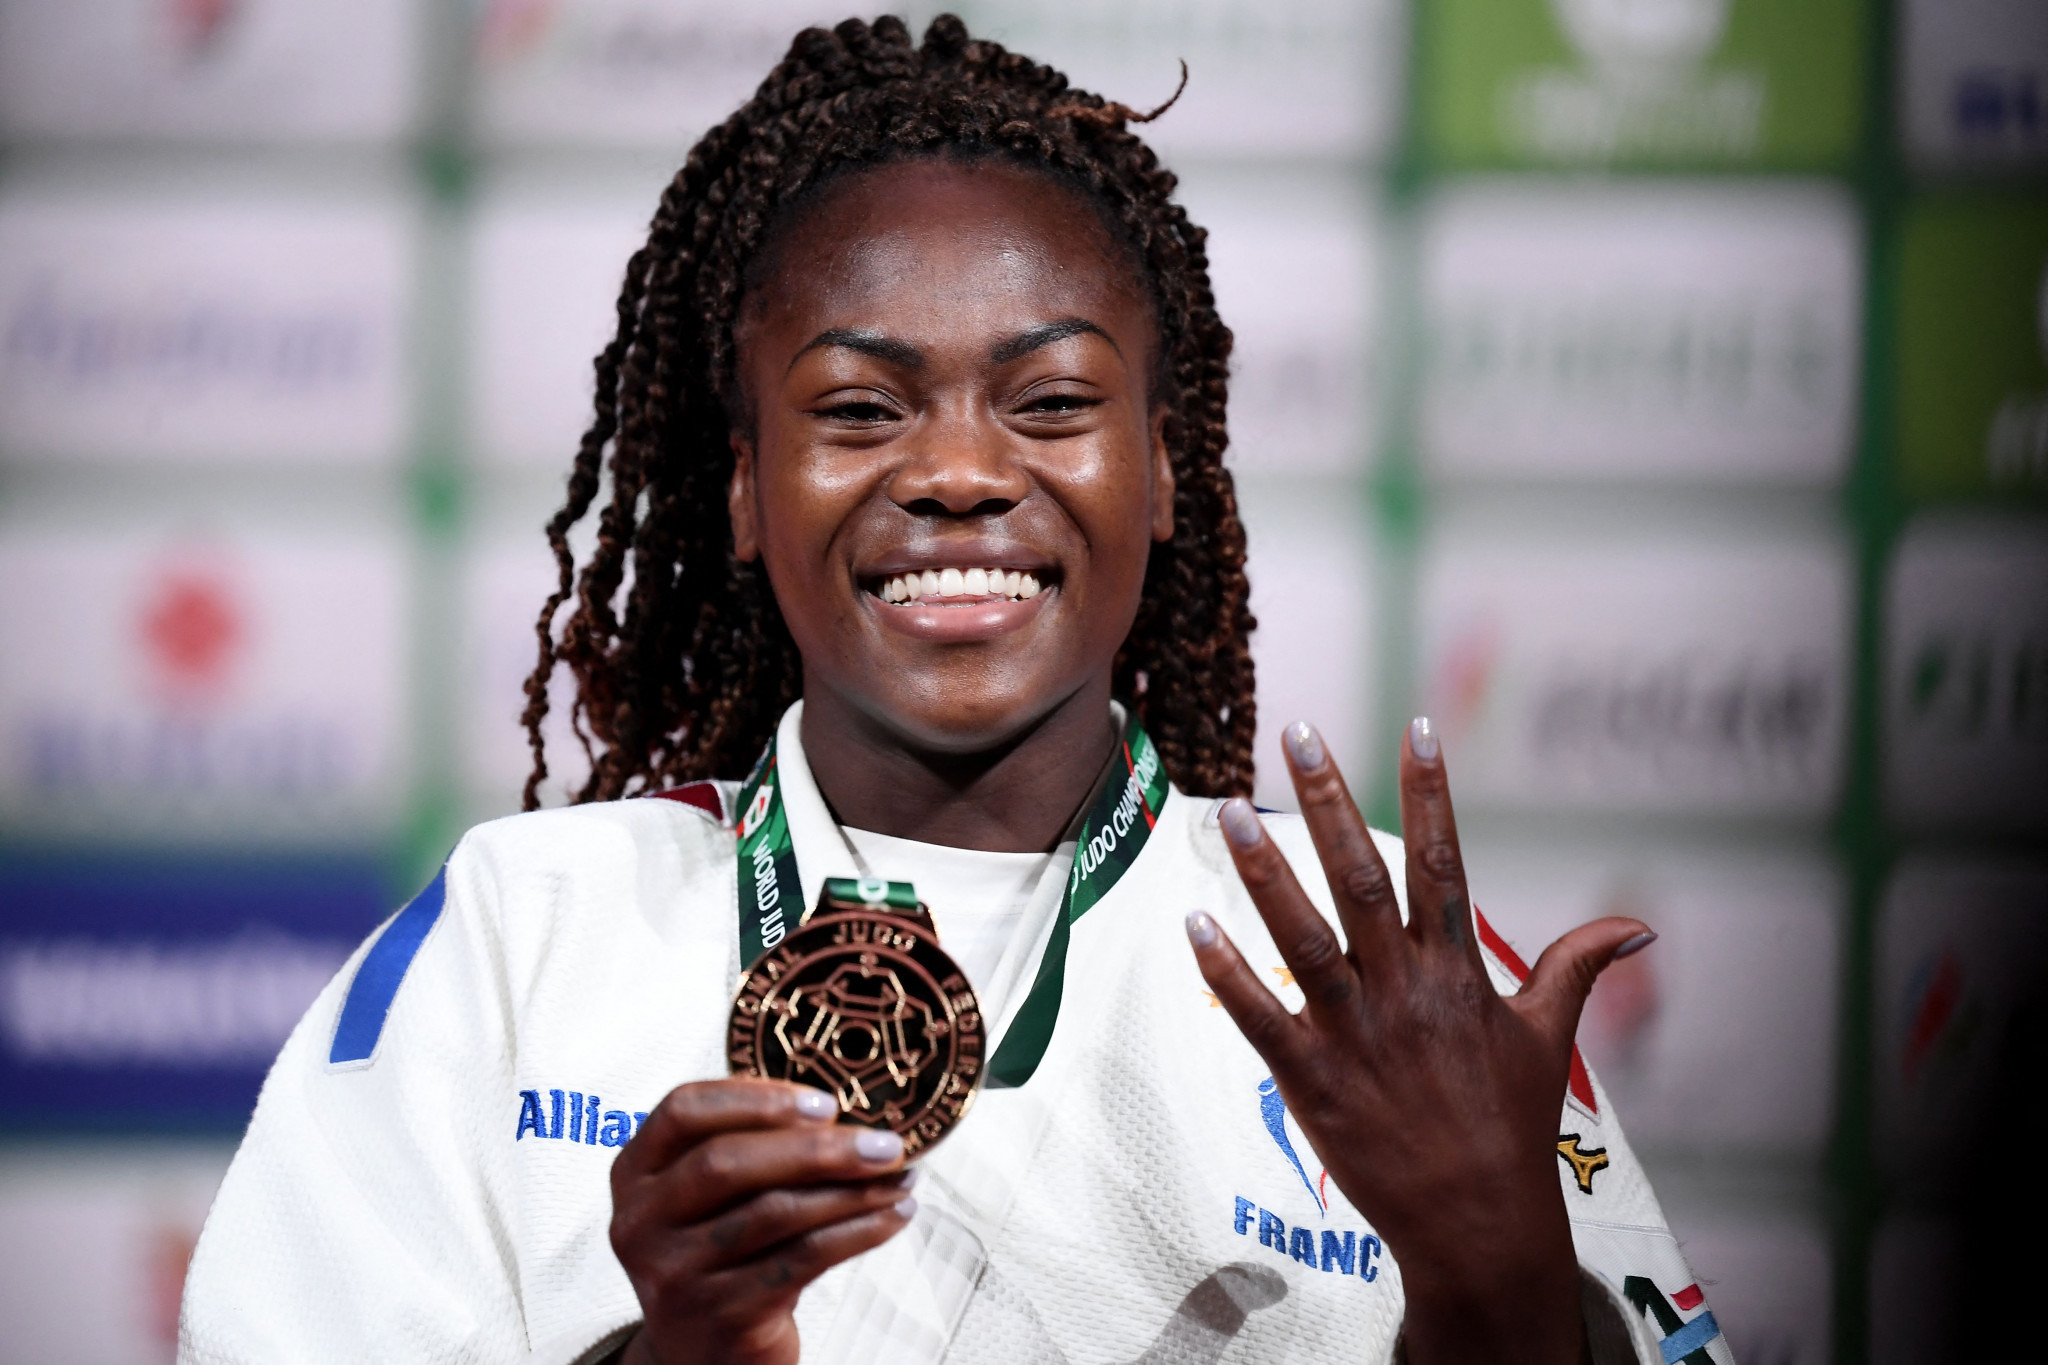 France's Agbegnenou captured her fifth world title with an impressive performance in Budapest ©Getty Images